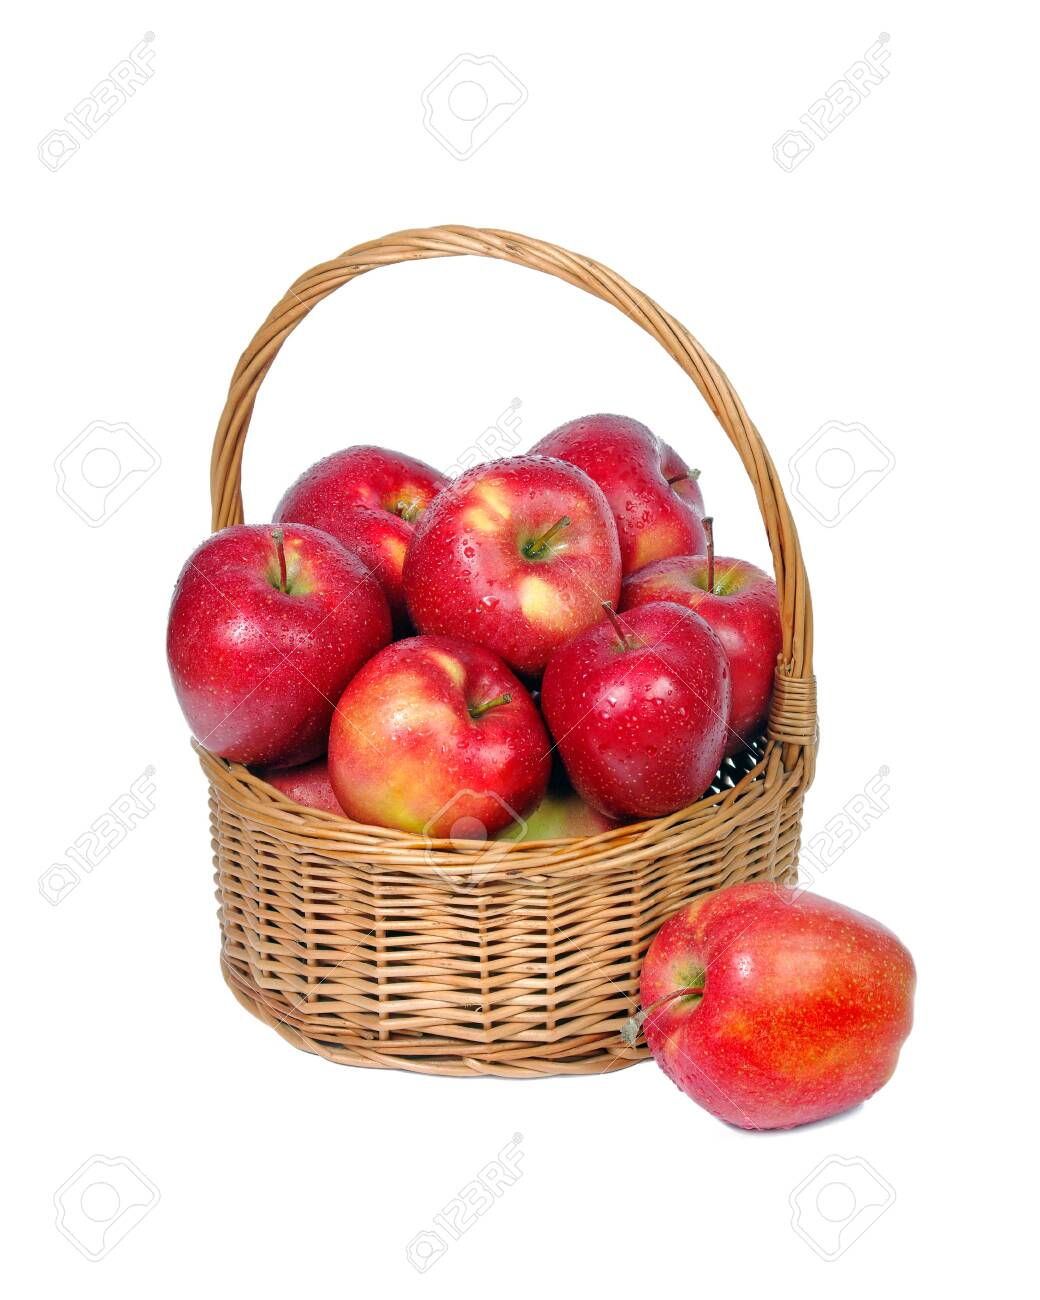 Red apples in wicker basket isolate on white - 123819200